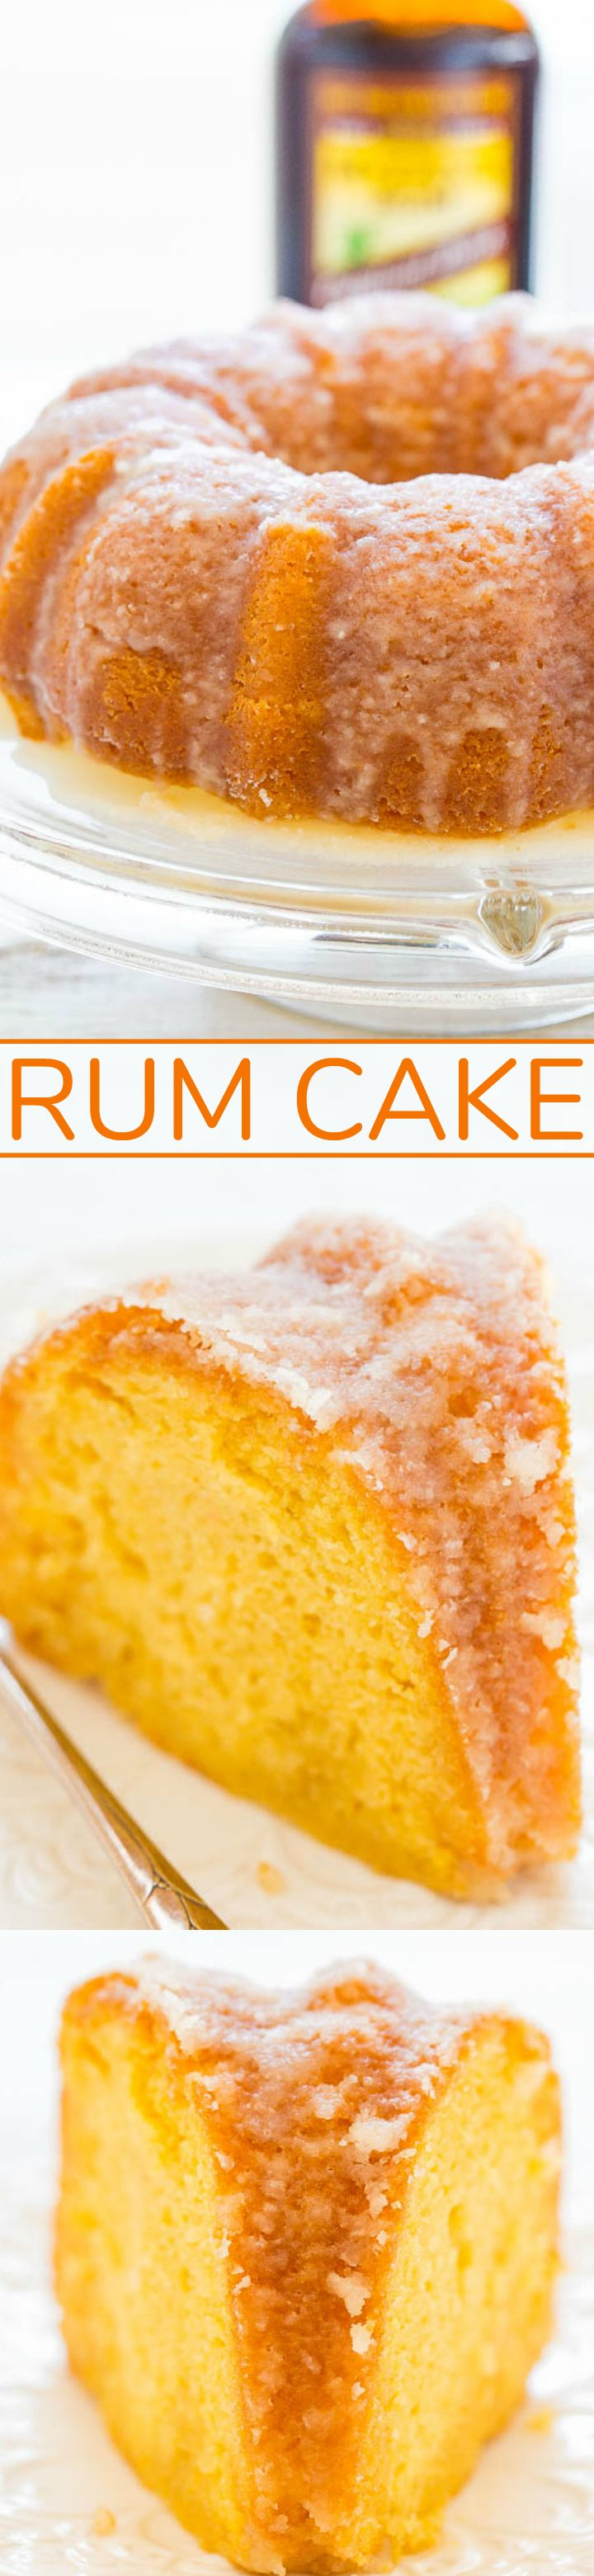 Rum Cake – A double dose of rum in this EASY cake that's supremely moist, buttery, and literally juicy from all the rum!! The perfect make-ahead holiday entertaining cake that everyone will LOVE!!